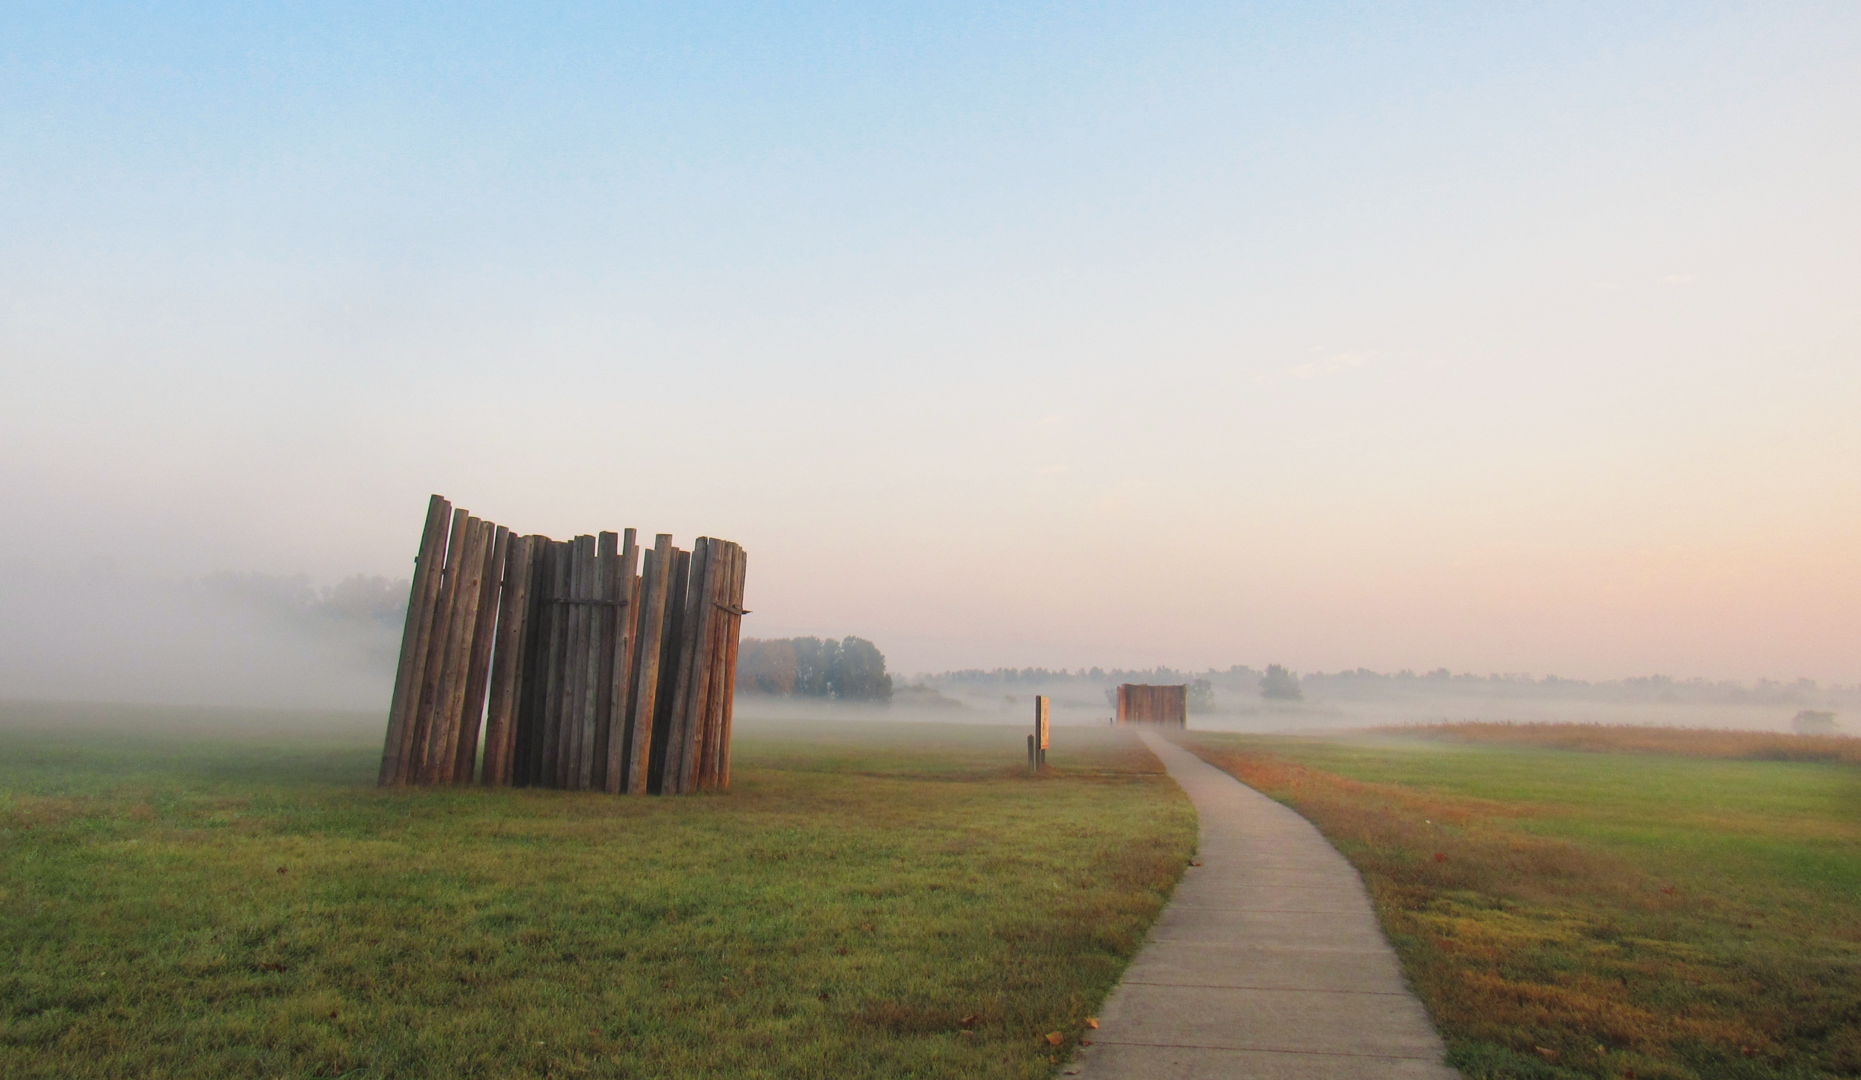 A reconstructed section of wall to the east of Monks Mound, Cahokia